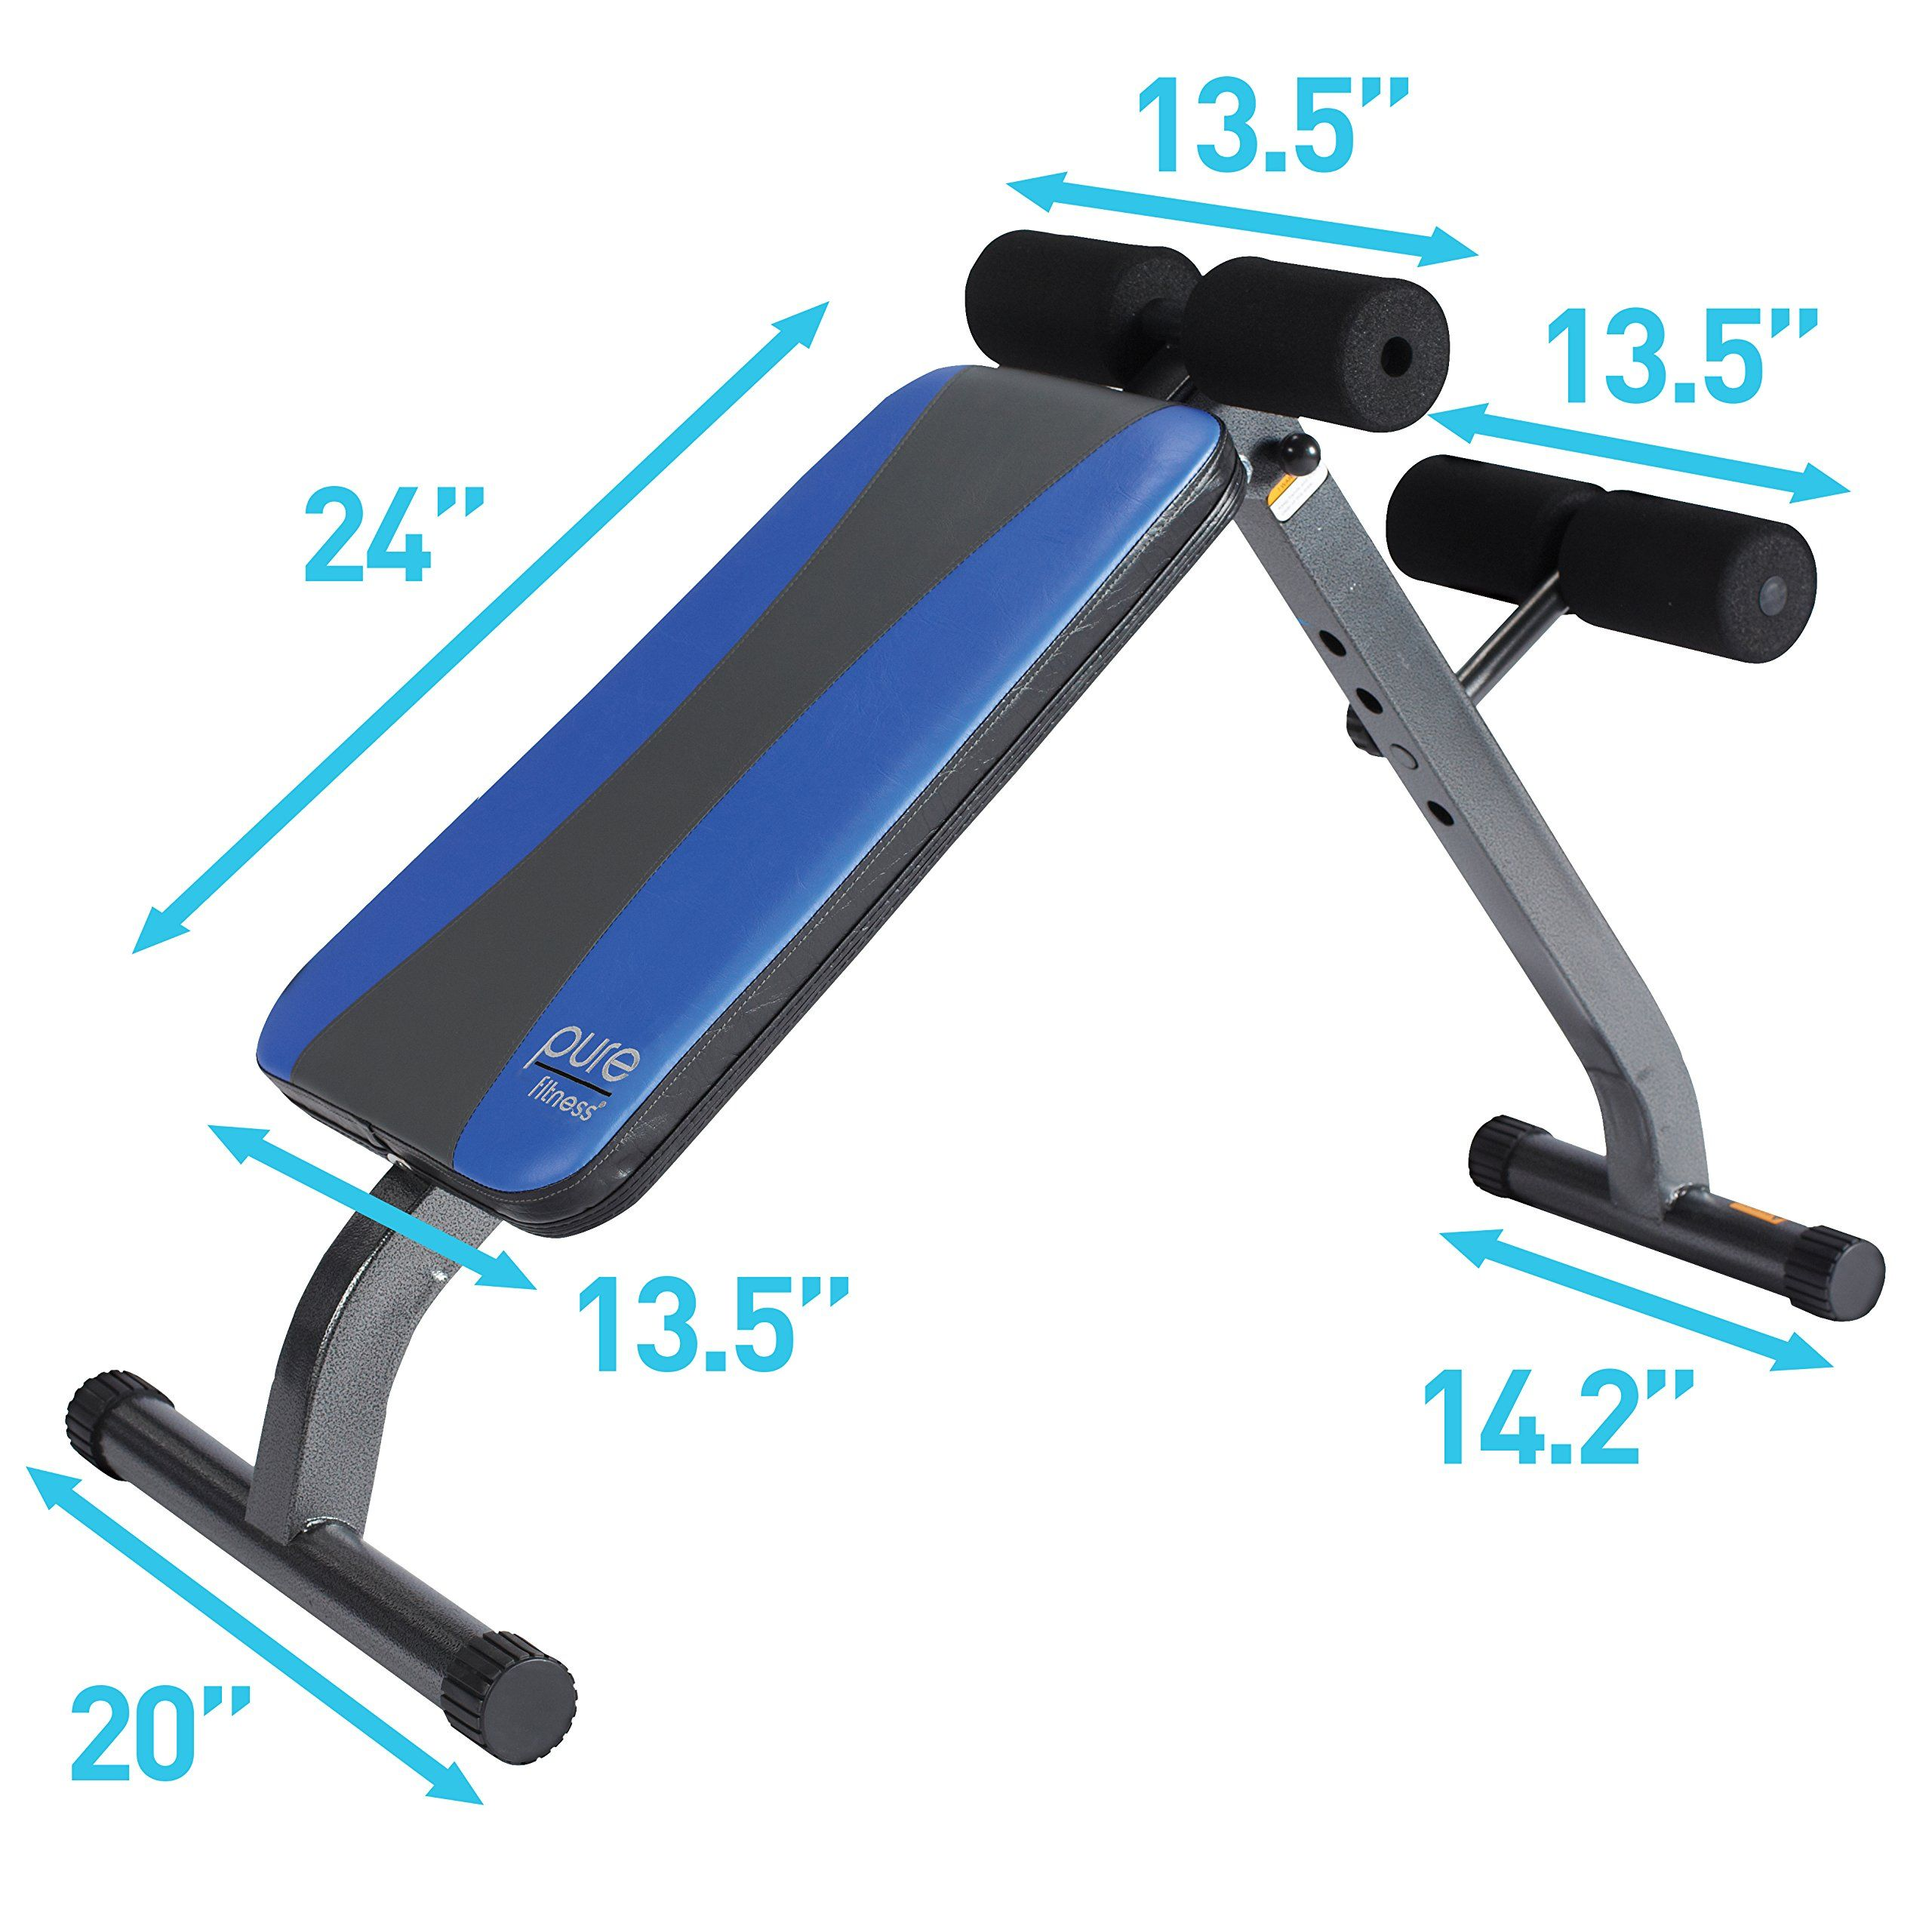 Pure Fitness Weight Training Workout Adjustable Ab Crunch Situp Bench Blue Black Find Out More At The Phot Dumbell Workout Workout Room Home Home Made Gym